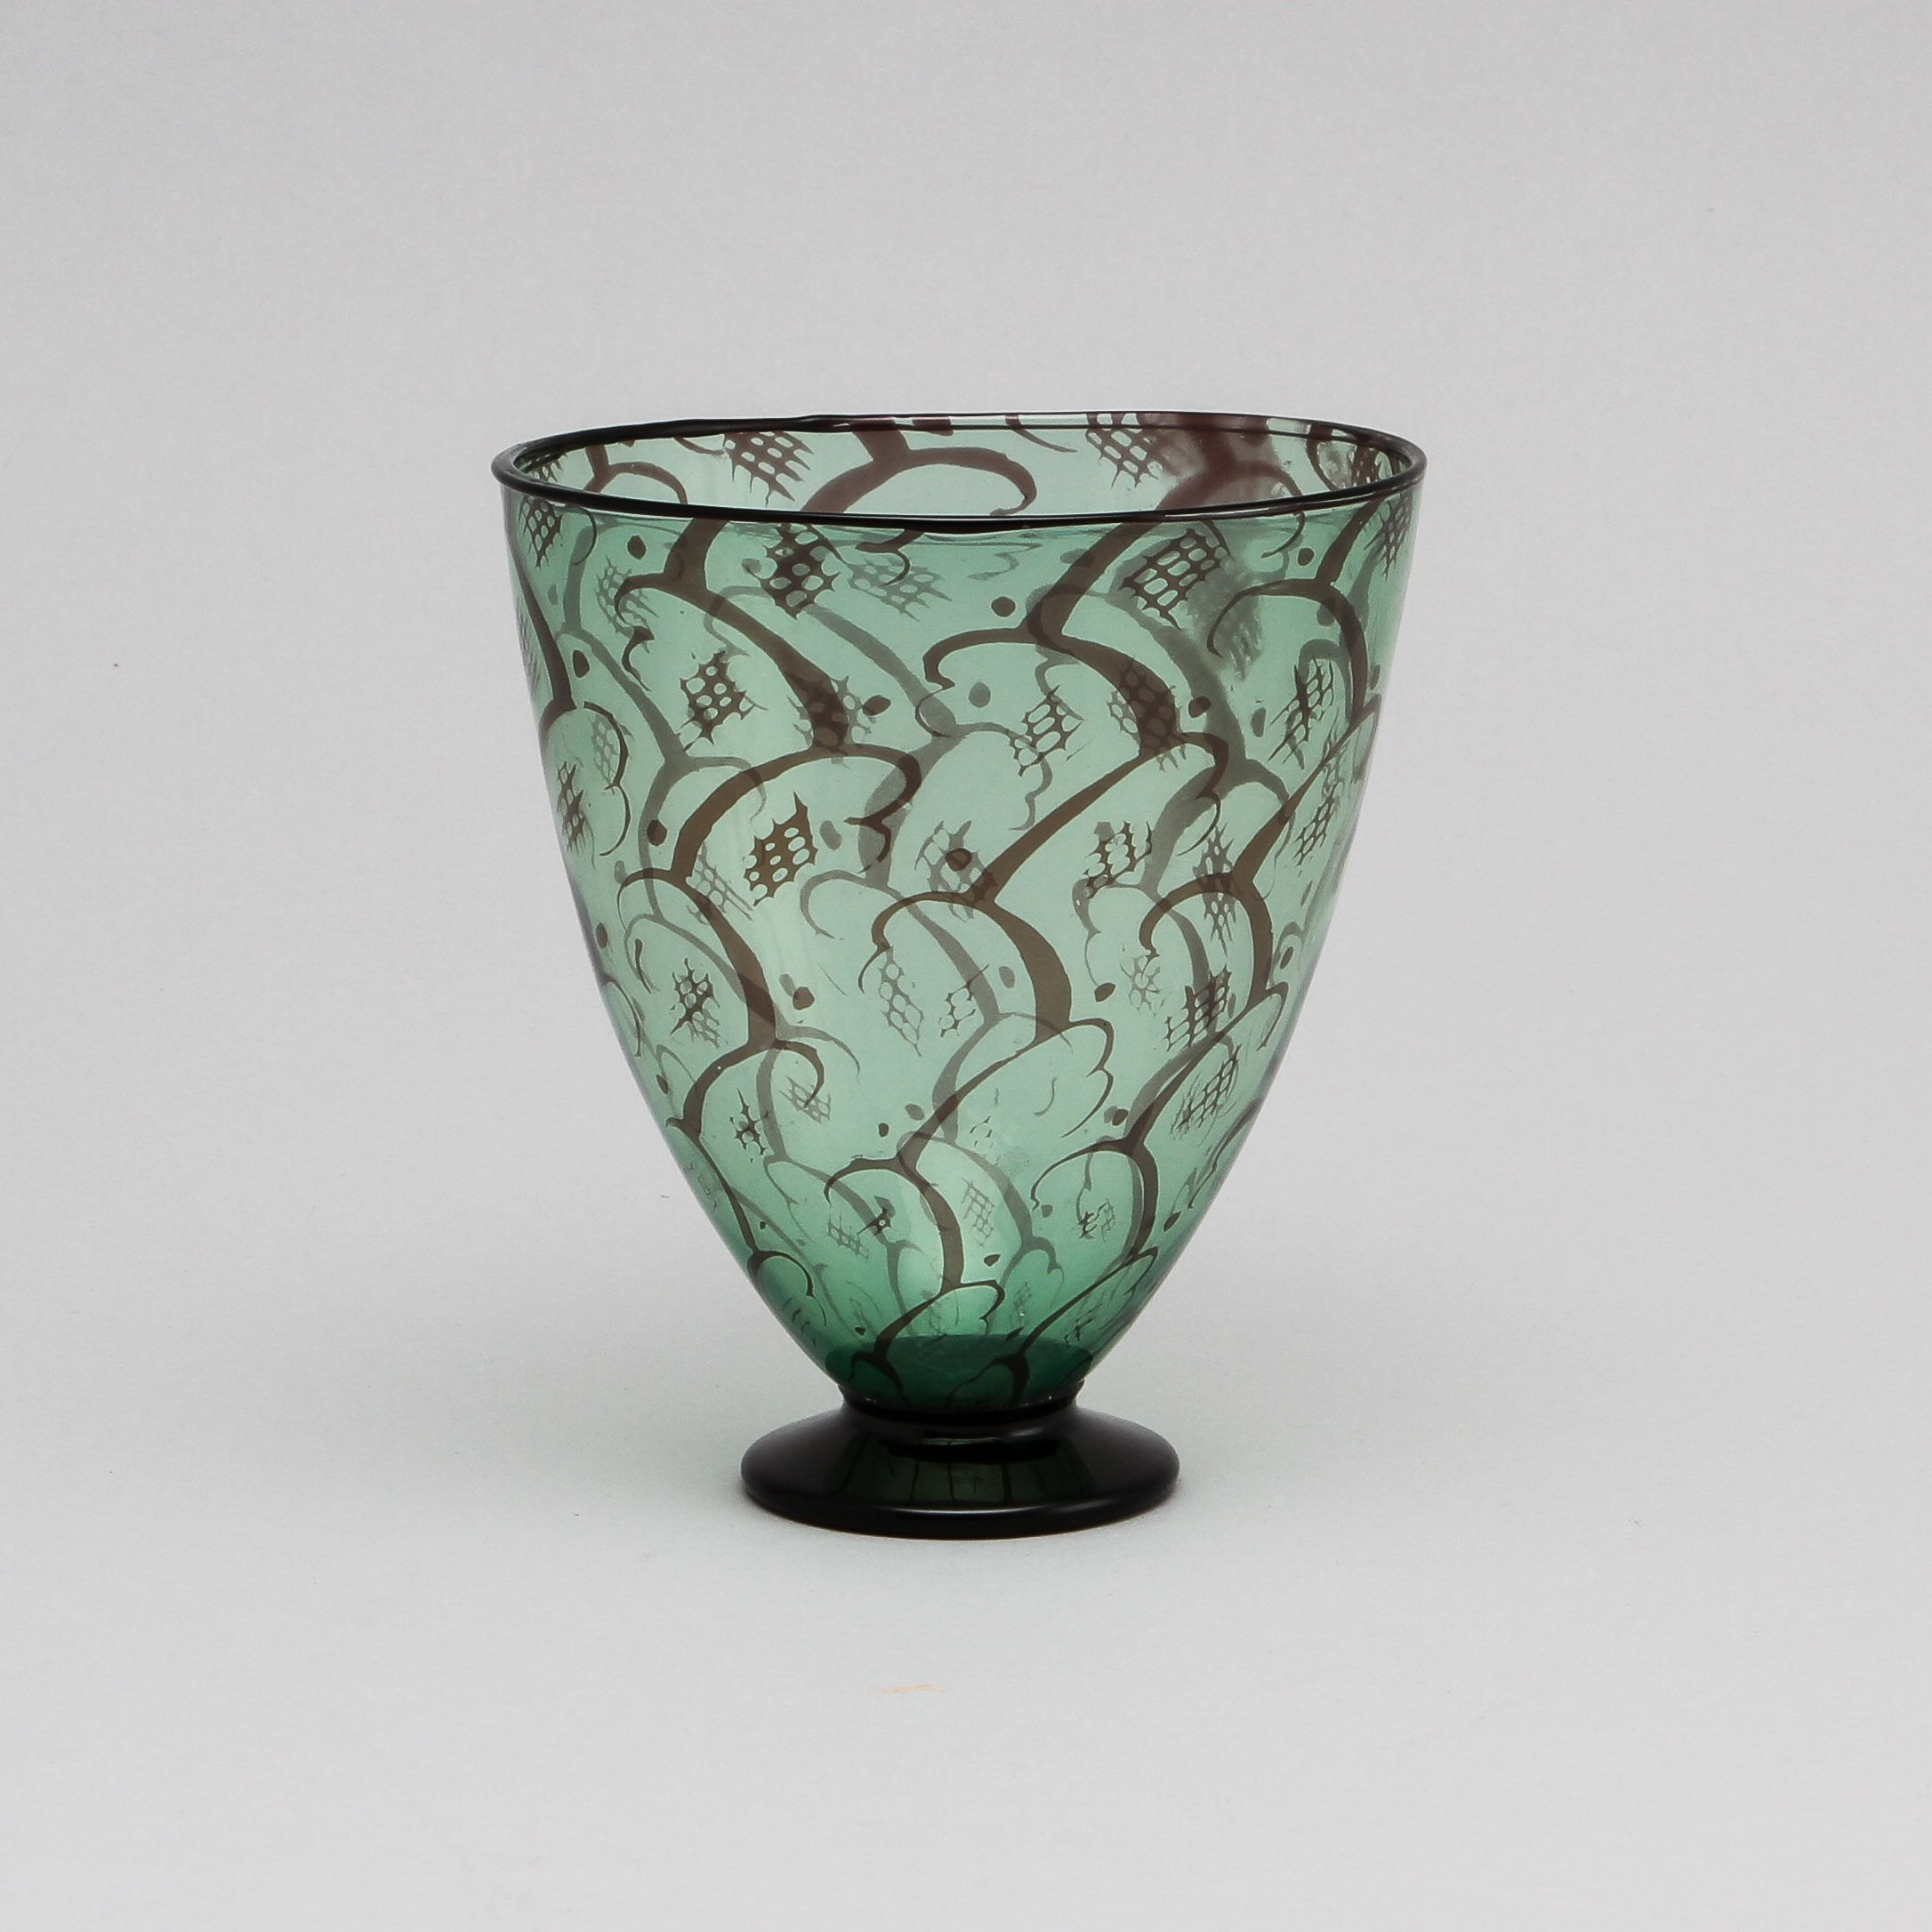 Handmade glass serving bowls with fireworks like textured glass details